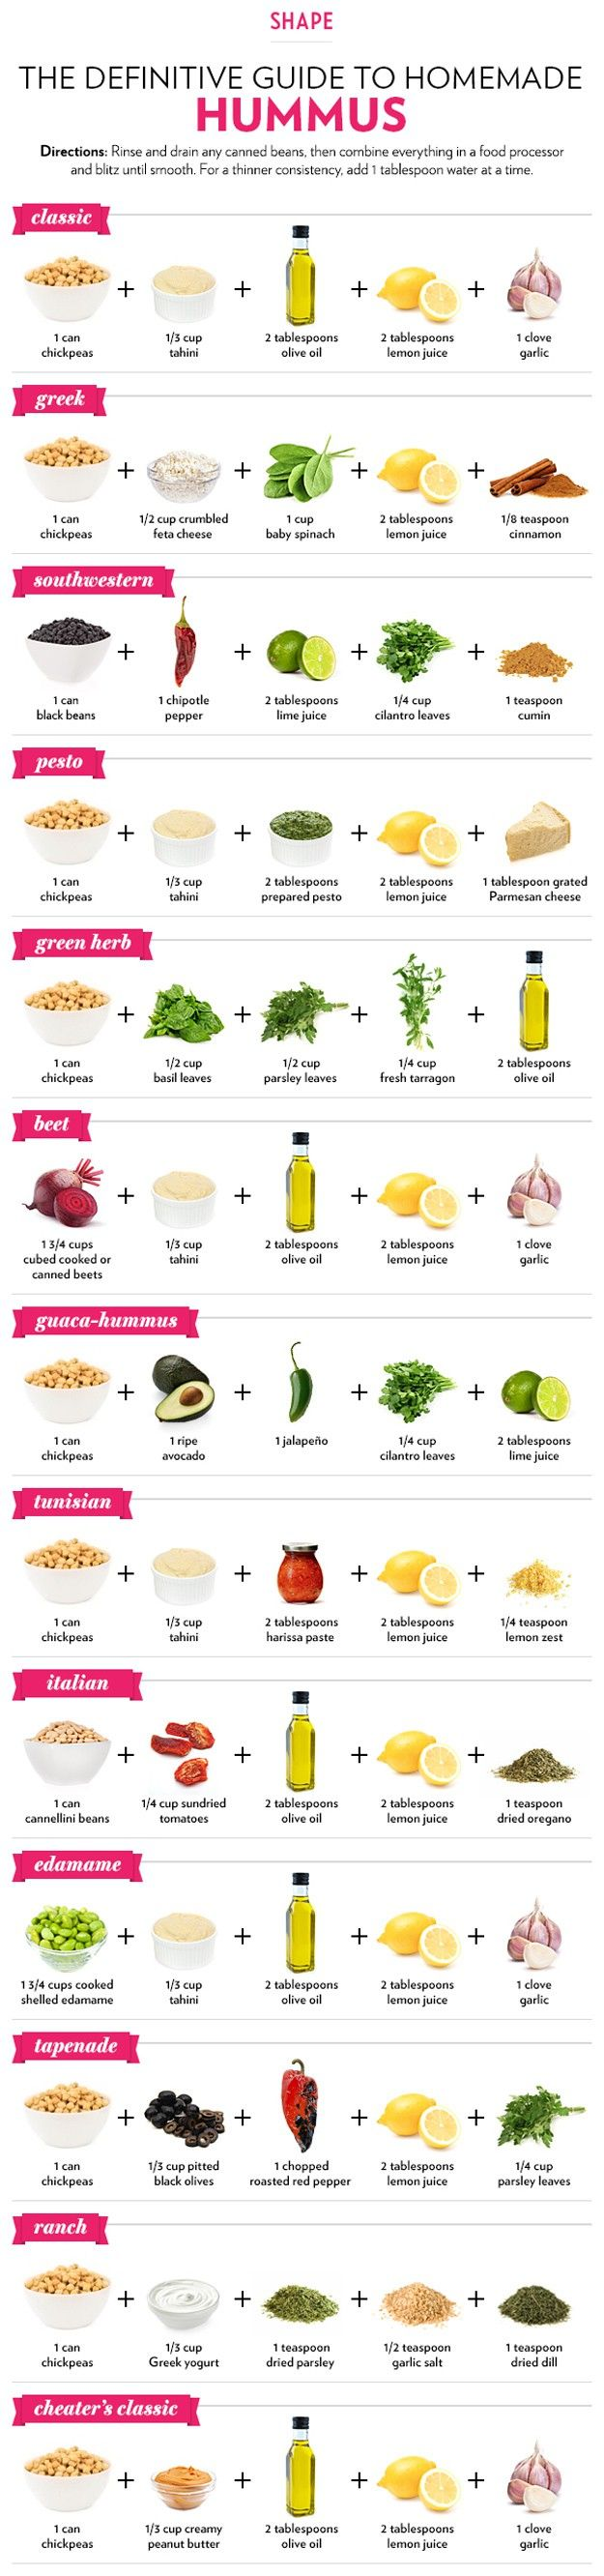 Healthy Eating - DIY Hummus From Scratch | Homemade Recipes http://homemaderecipes.com/healthy/healthy-eating-diagrams